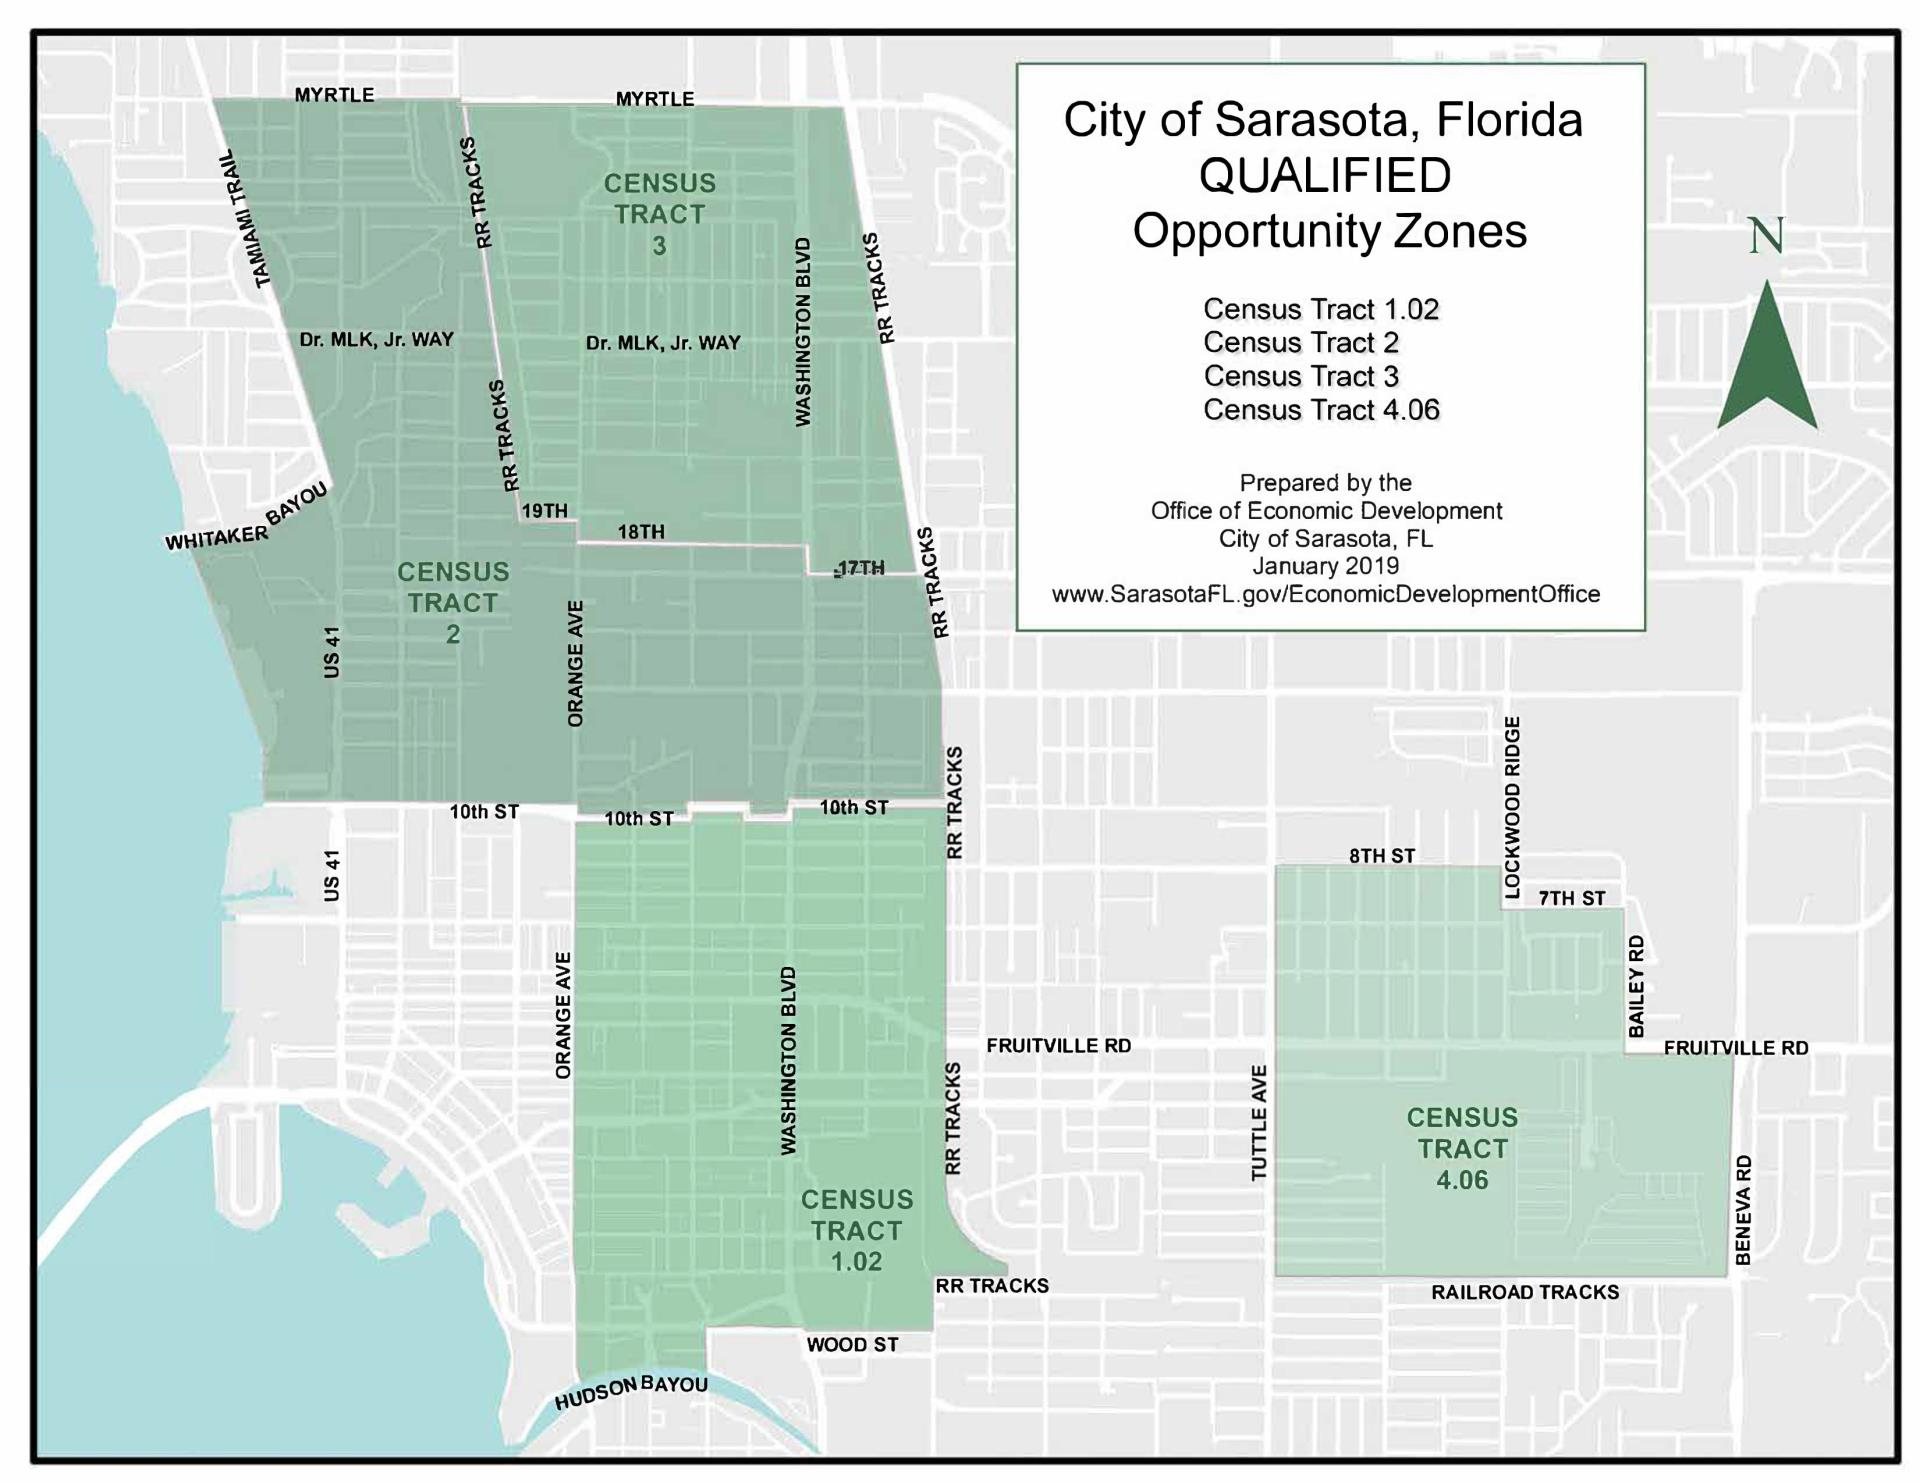 Four areas of City named 'Opportunity Zones' for investment ... on fort worth flood map, oldsmar flood map, san jose flood map, fort walton beach flood map, pensacola flood map, shreveport flood map, plano flood map, florida flood zone map, north palm beach flood map, greenville flood map, manatee flood map, stockton flood map, columbia flood map, venice flood map, hartford flood map, detroit flood map, fresno flood map, fort myers flood map, amarillo flood map, honolulu flood map,